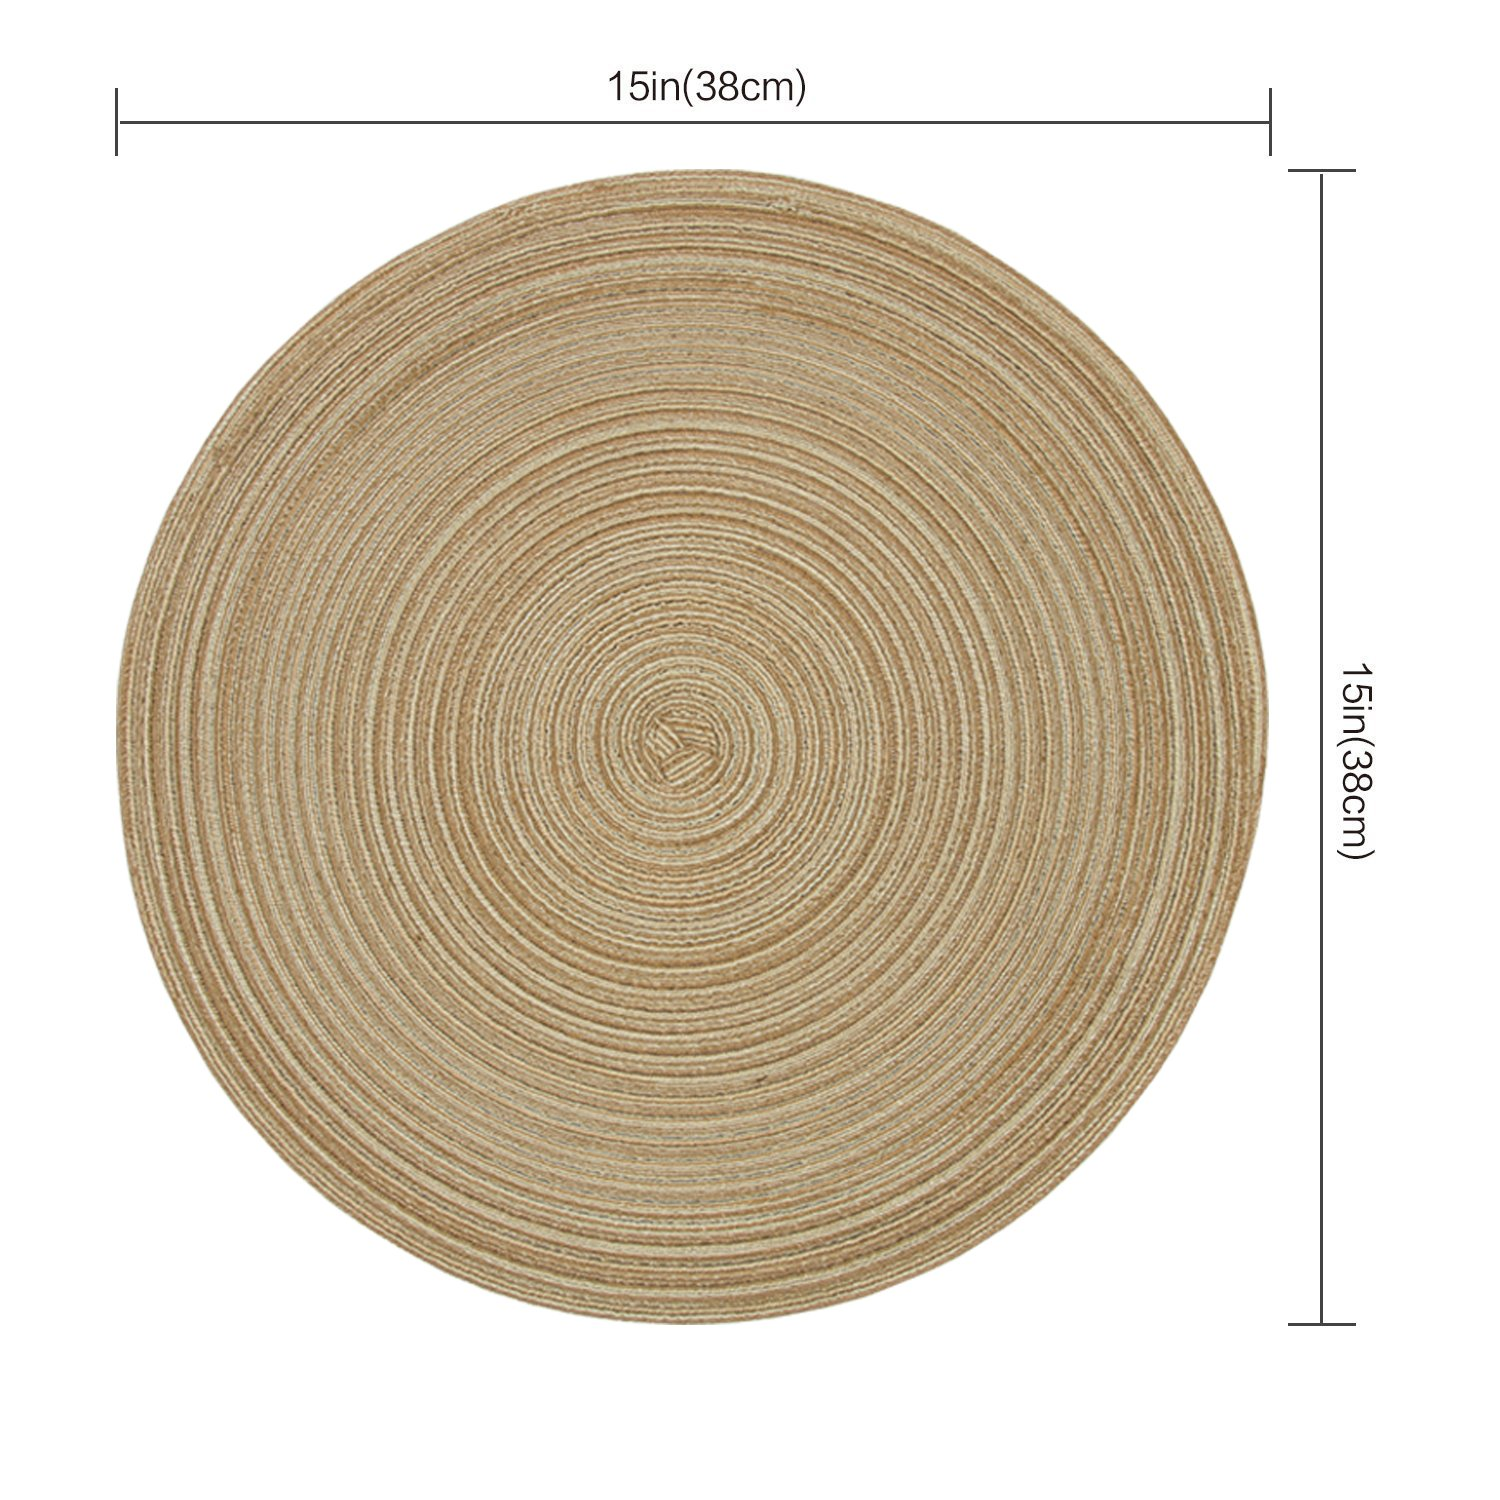 Homcomoda Round Table Placemats, Placemats Kitchen Table Set 6-14 inch (Brown) by Homcomoda (Image #2)